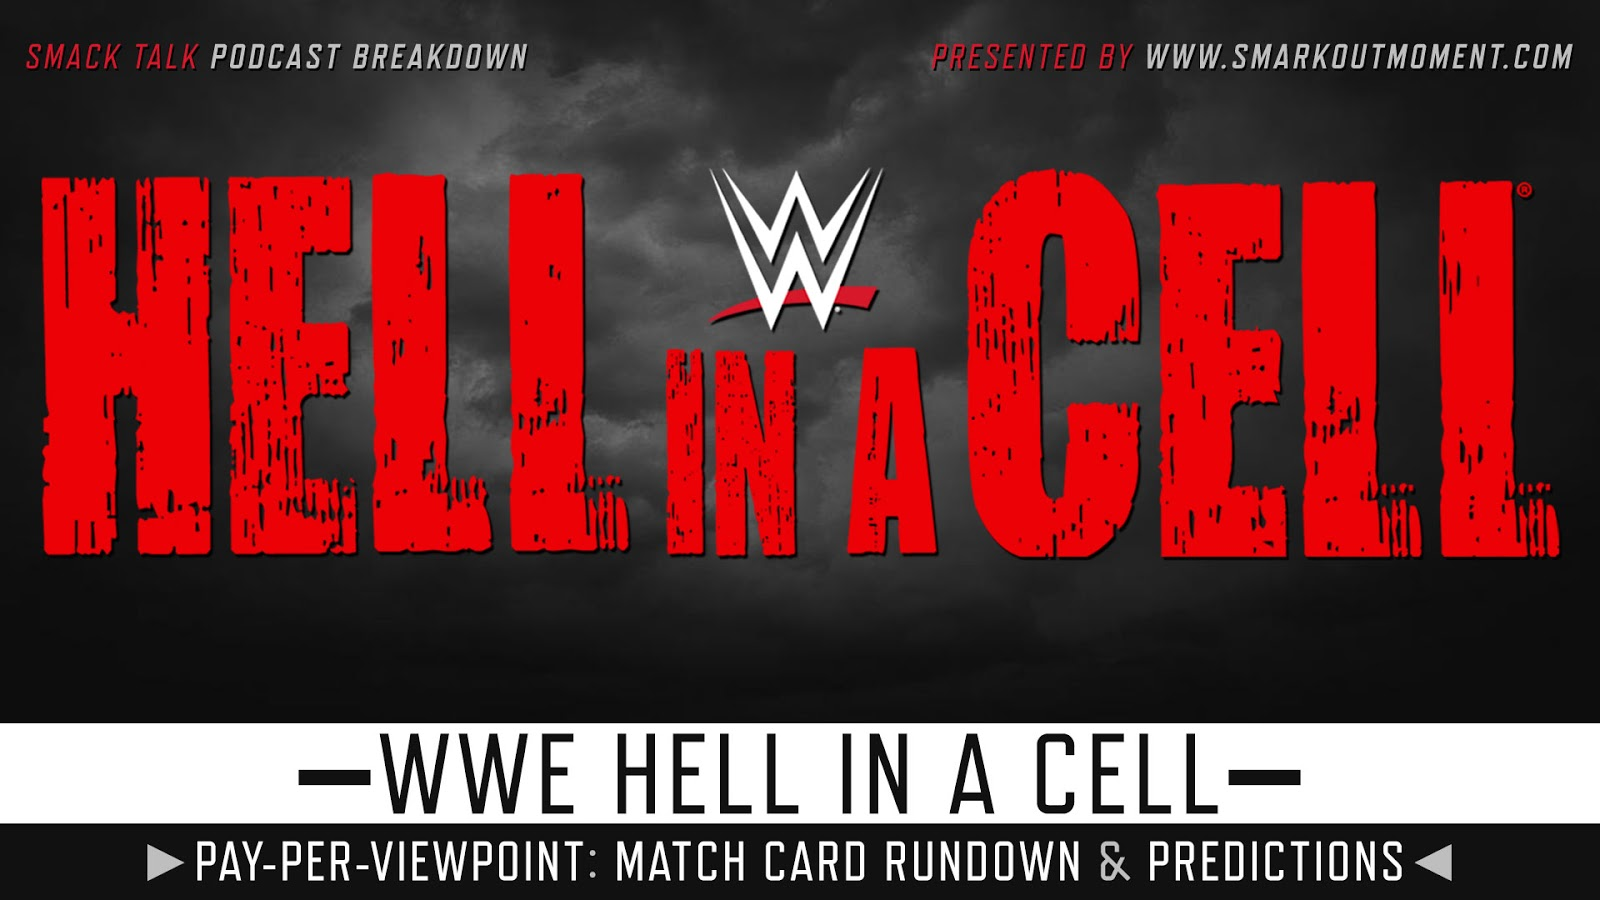 WWE Hell in a Cell 2018 spoilers podcast